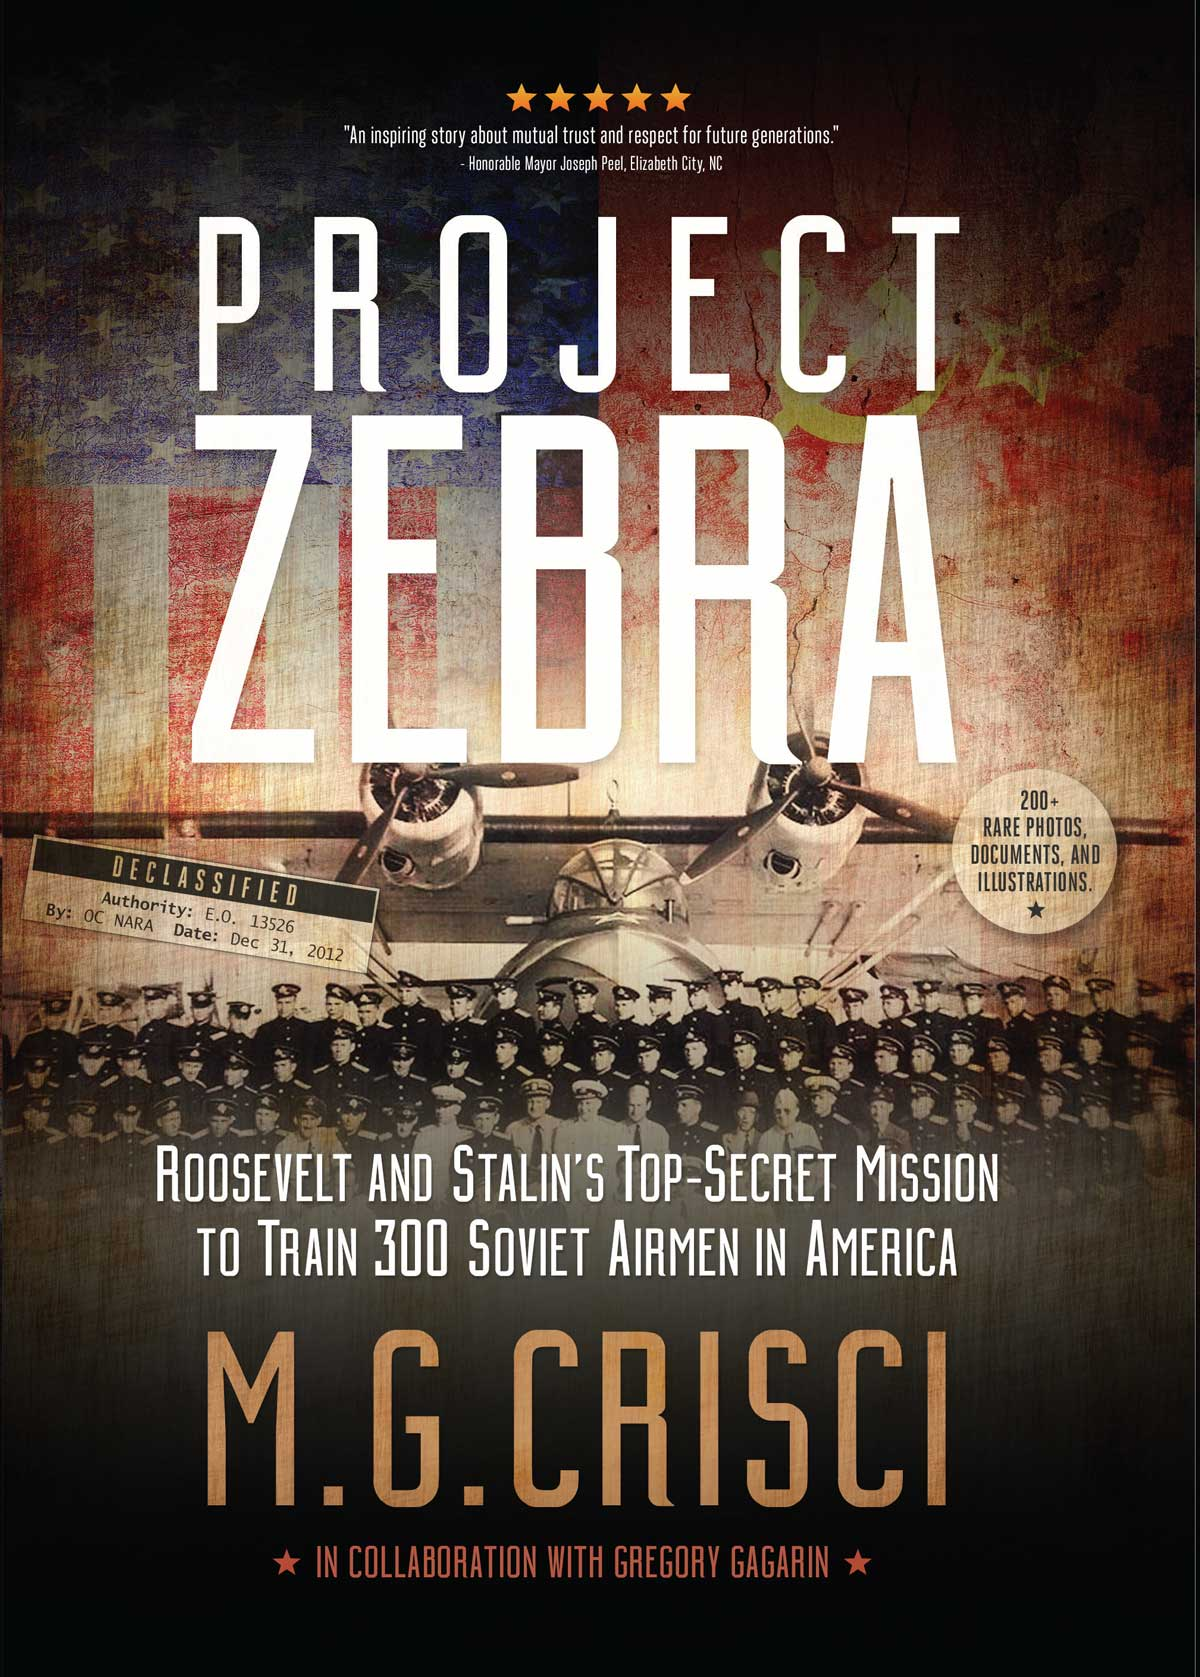 Project Zebra. Roosevelt and Stalin's Secret Mission to Train 300 Soviet Airmen in America.